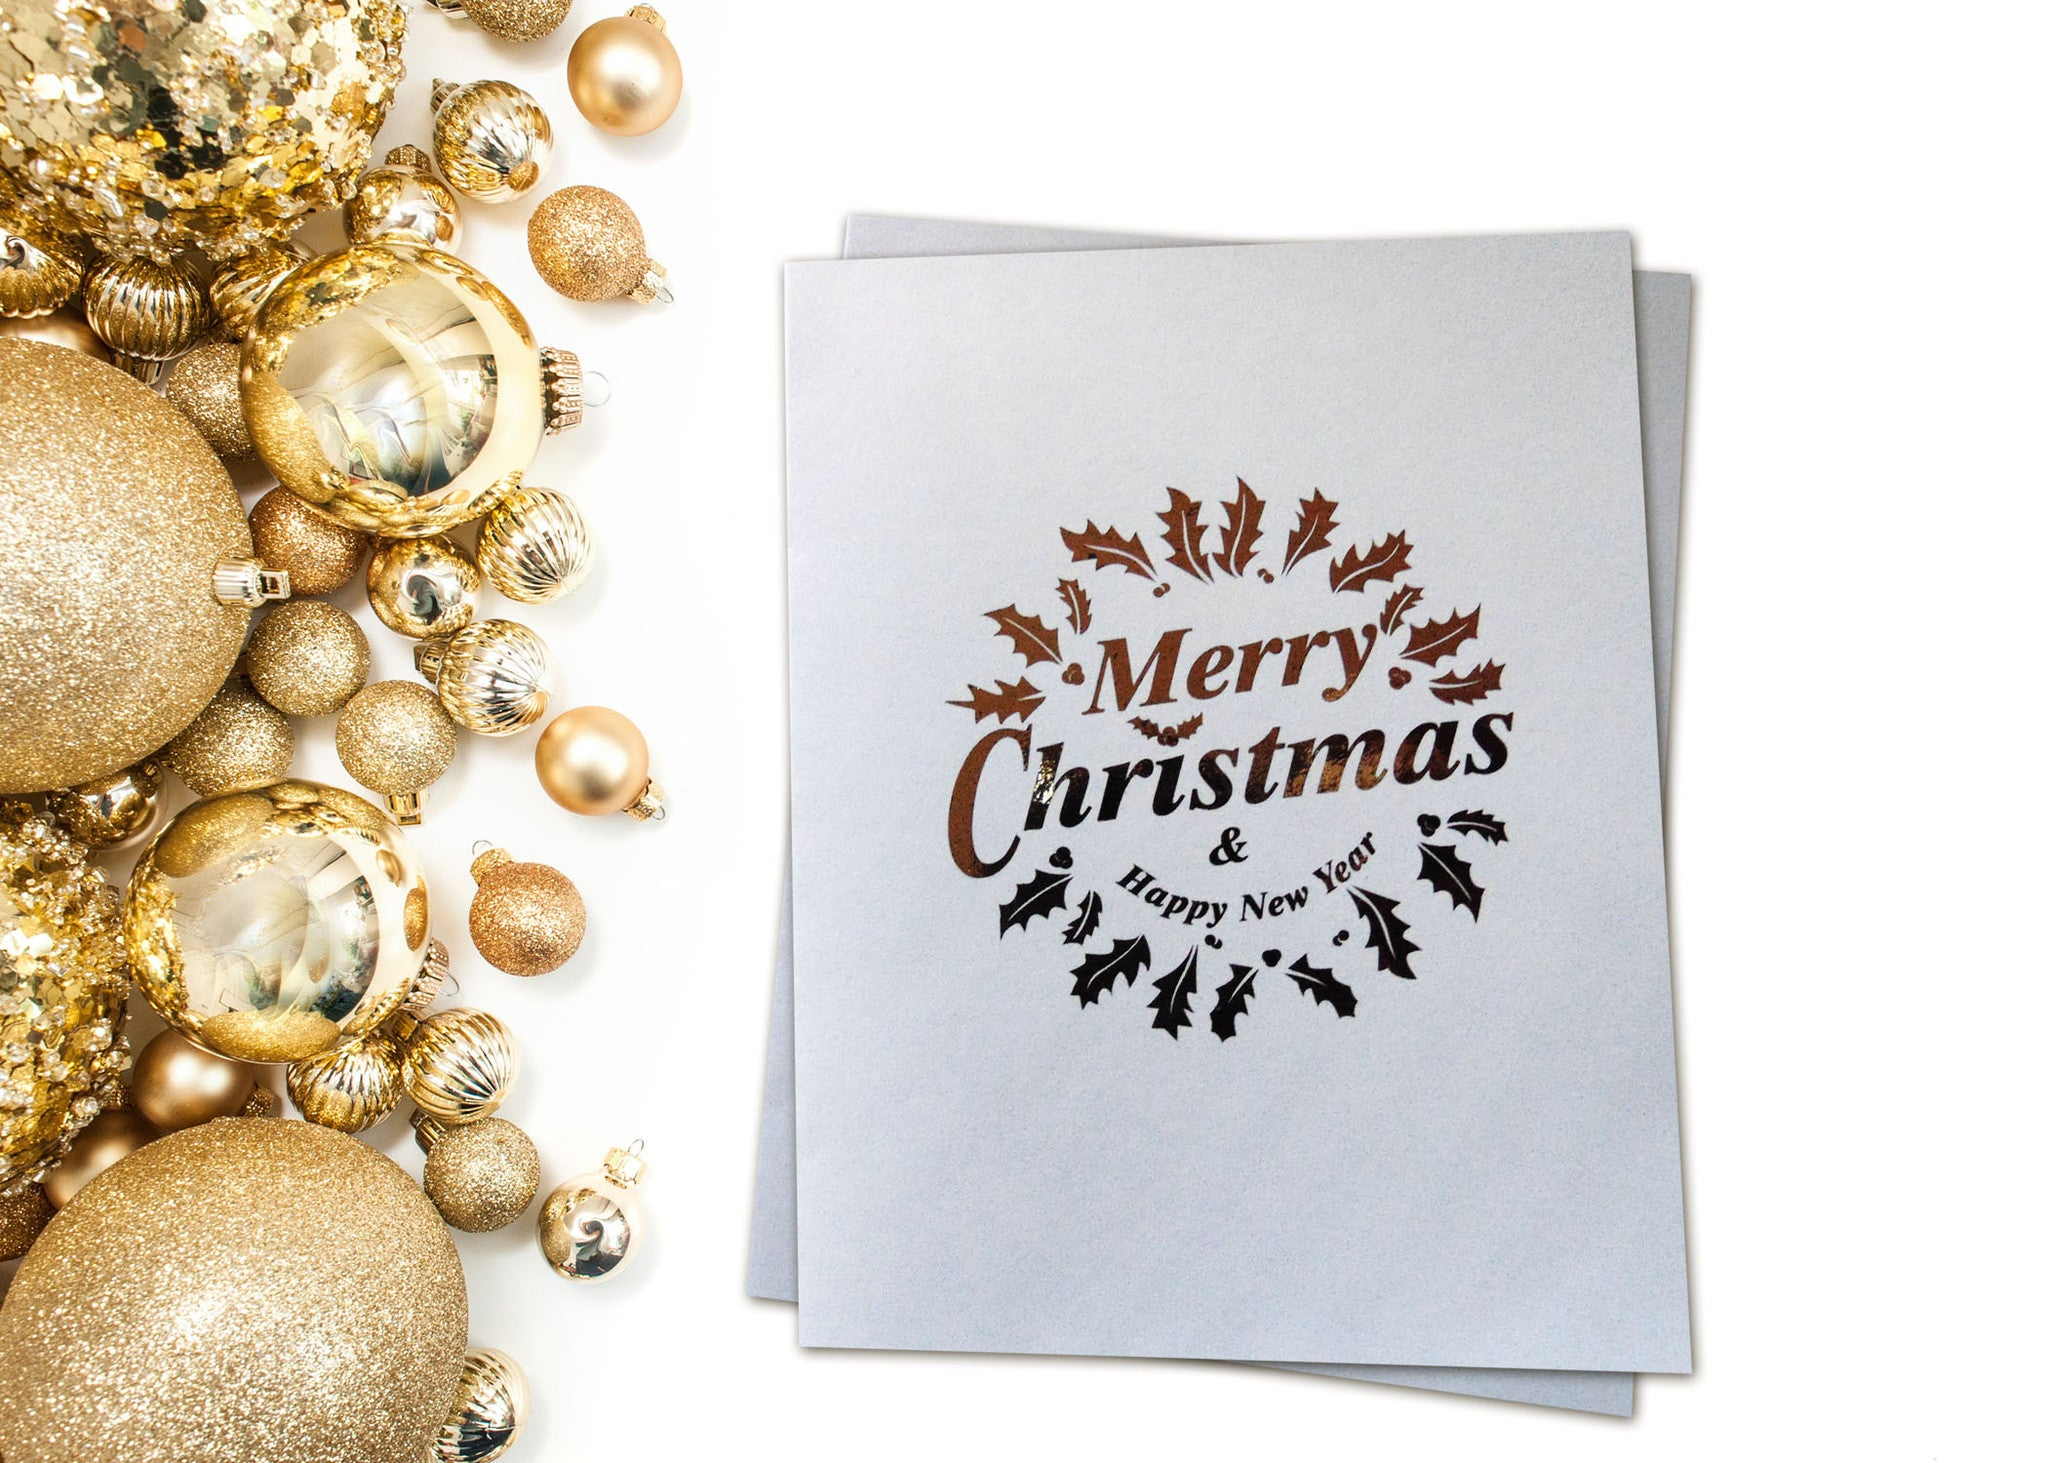 Holiday Cards Merry Christmas Wreath Pretty Adorable Designs